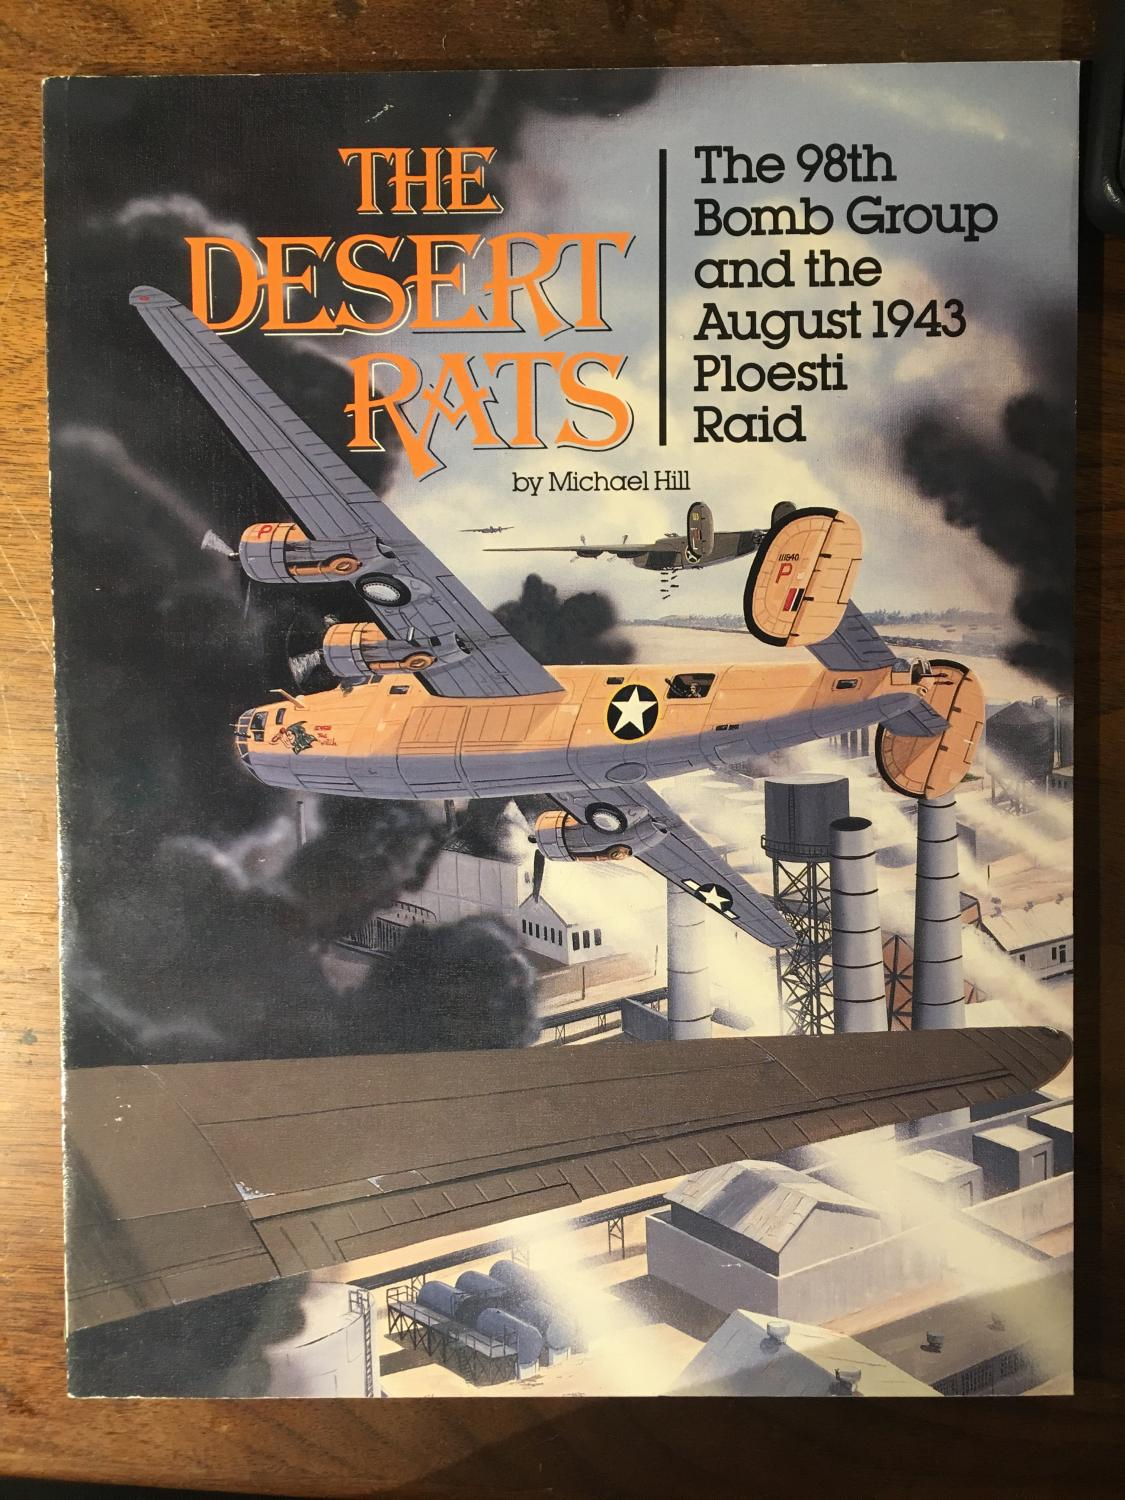 The Desert Rats 98th Bomb Group And August 1943 Ploesti Raid Michael